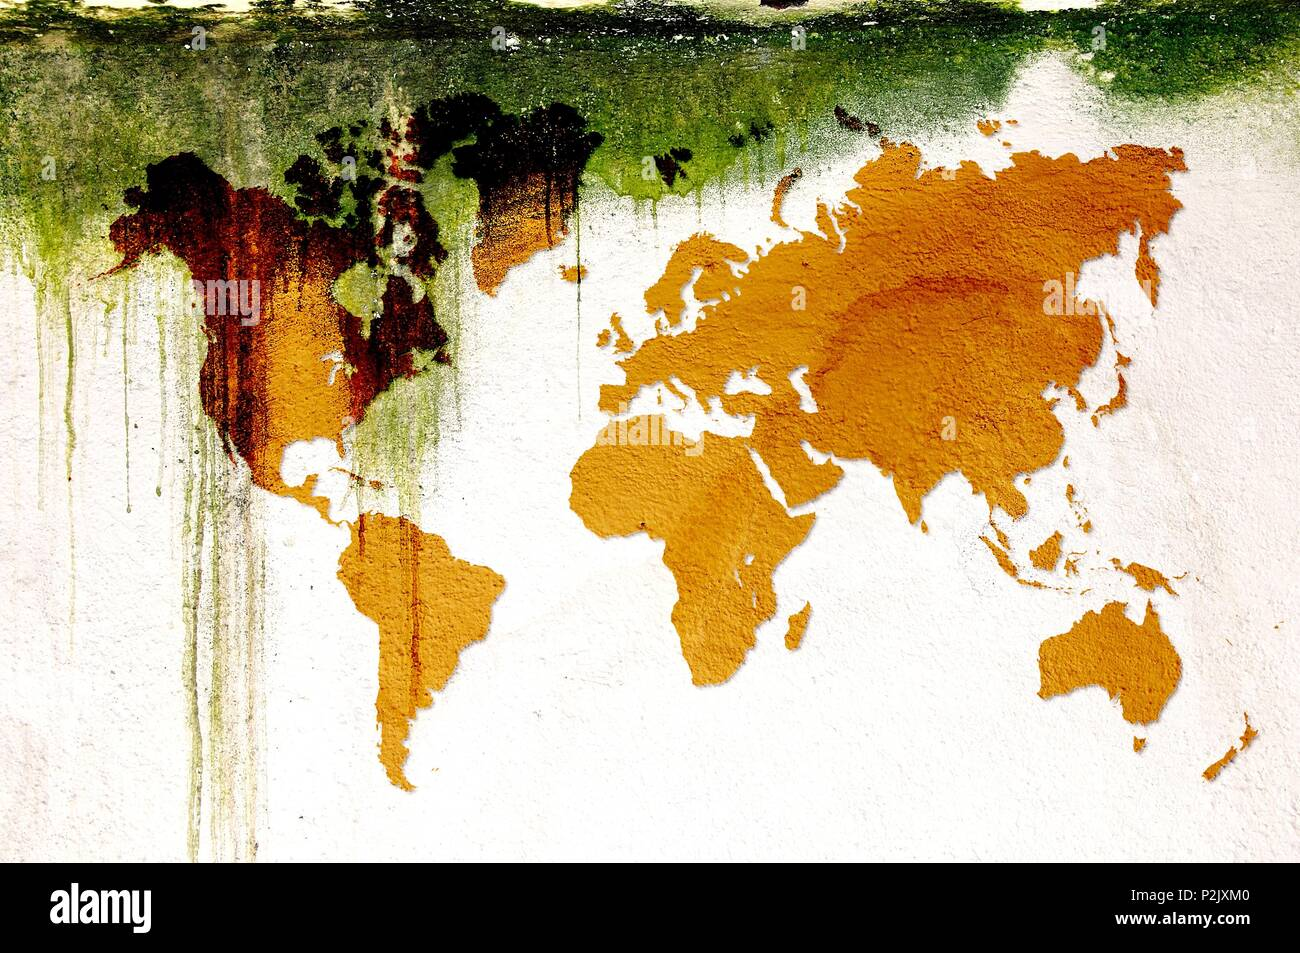 Grunge sepia dripping world map on mossy concrete wall. Elements of ...